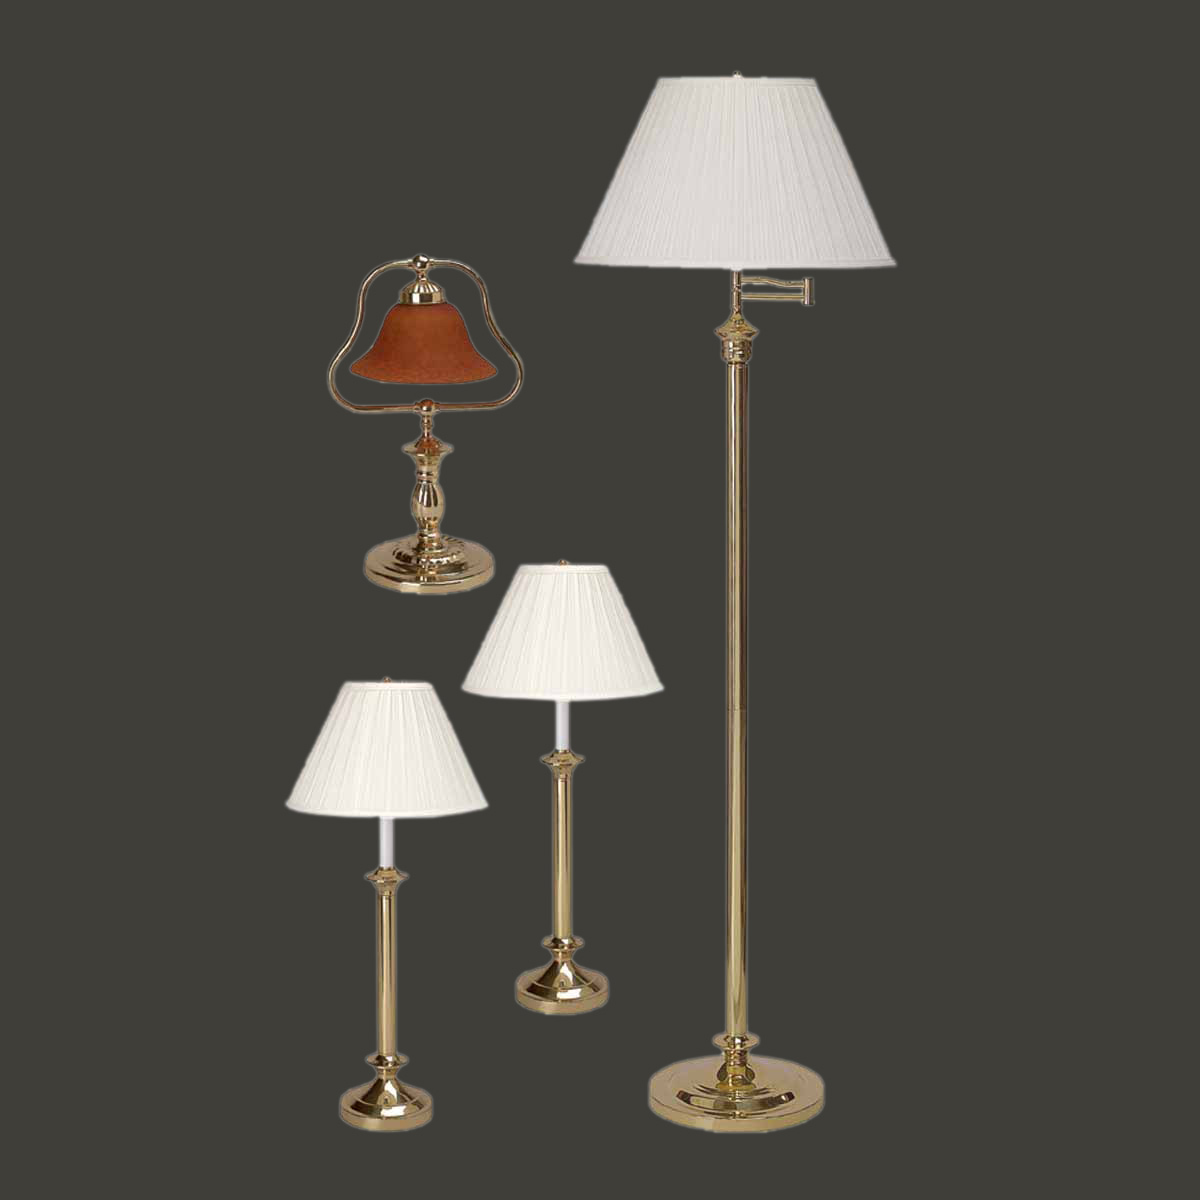 Floor lamp bright brass traditional 4 pc lamp set tablefloor lamp bright brass traditional 4 pc lamp set aloadofball